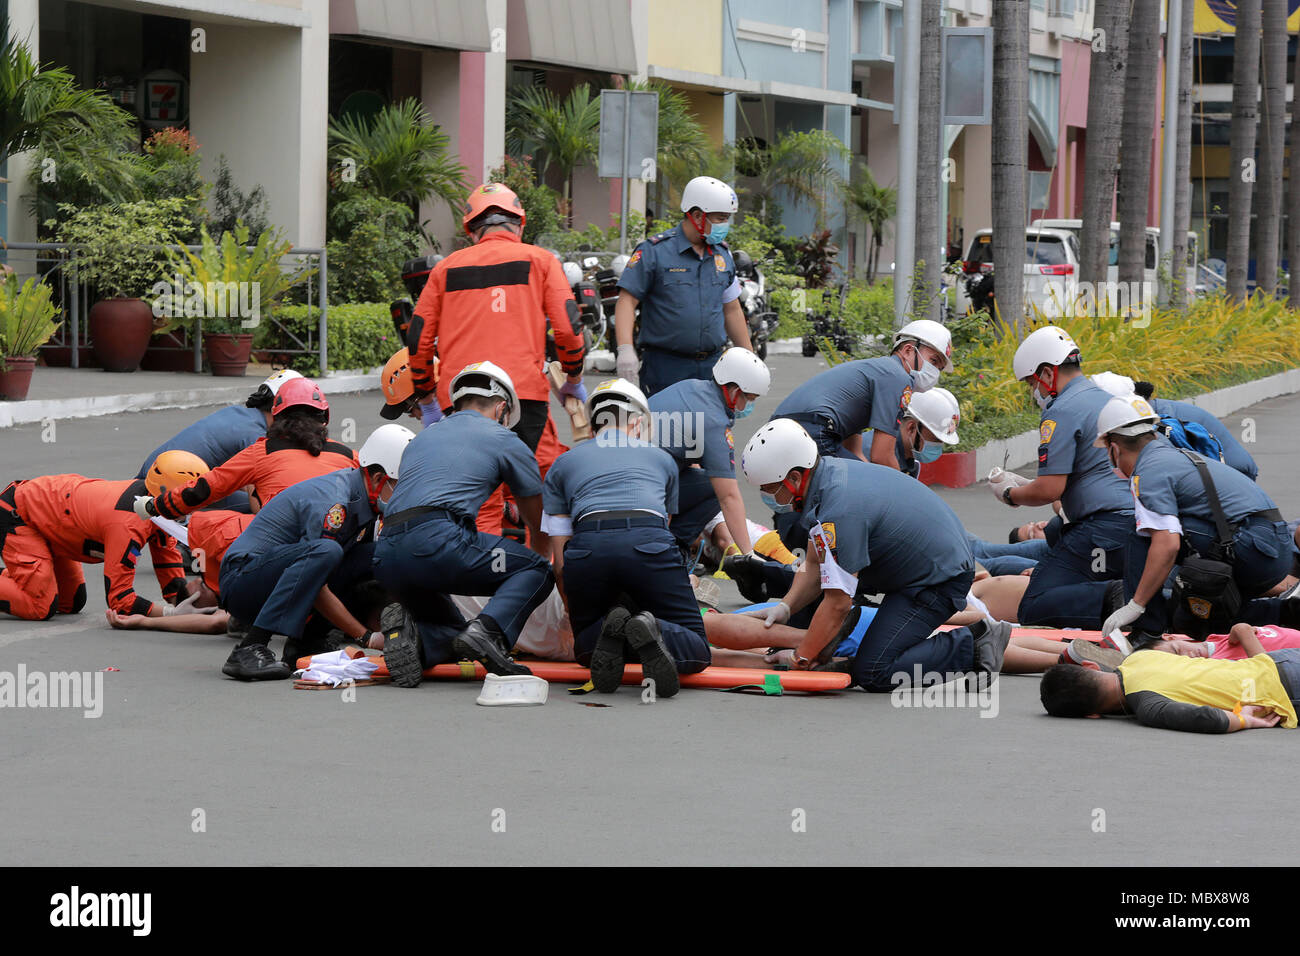 Quezon City, Philippines. 12th Apr, 2018. Members of the Special Weapons and Tactics of the Philippine National Police (PNP-SWAT) participate in a simulation exercise at the Anti-Terrorism and Crisis Management in Quezon City, the Philippines, April 12, 2018. The PNP and the Armed Forces of the Philippines conducted the anti-terrorism drill to show their capabilities in coping with threats of terrorism, hostage-taking, and bomb crises. Credit: Rouelle Umali/Xinhua/Alamy Live News - Stock Image